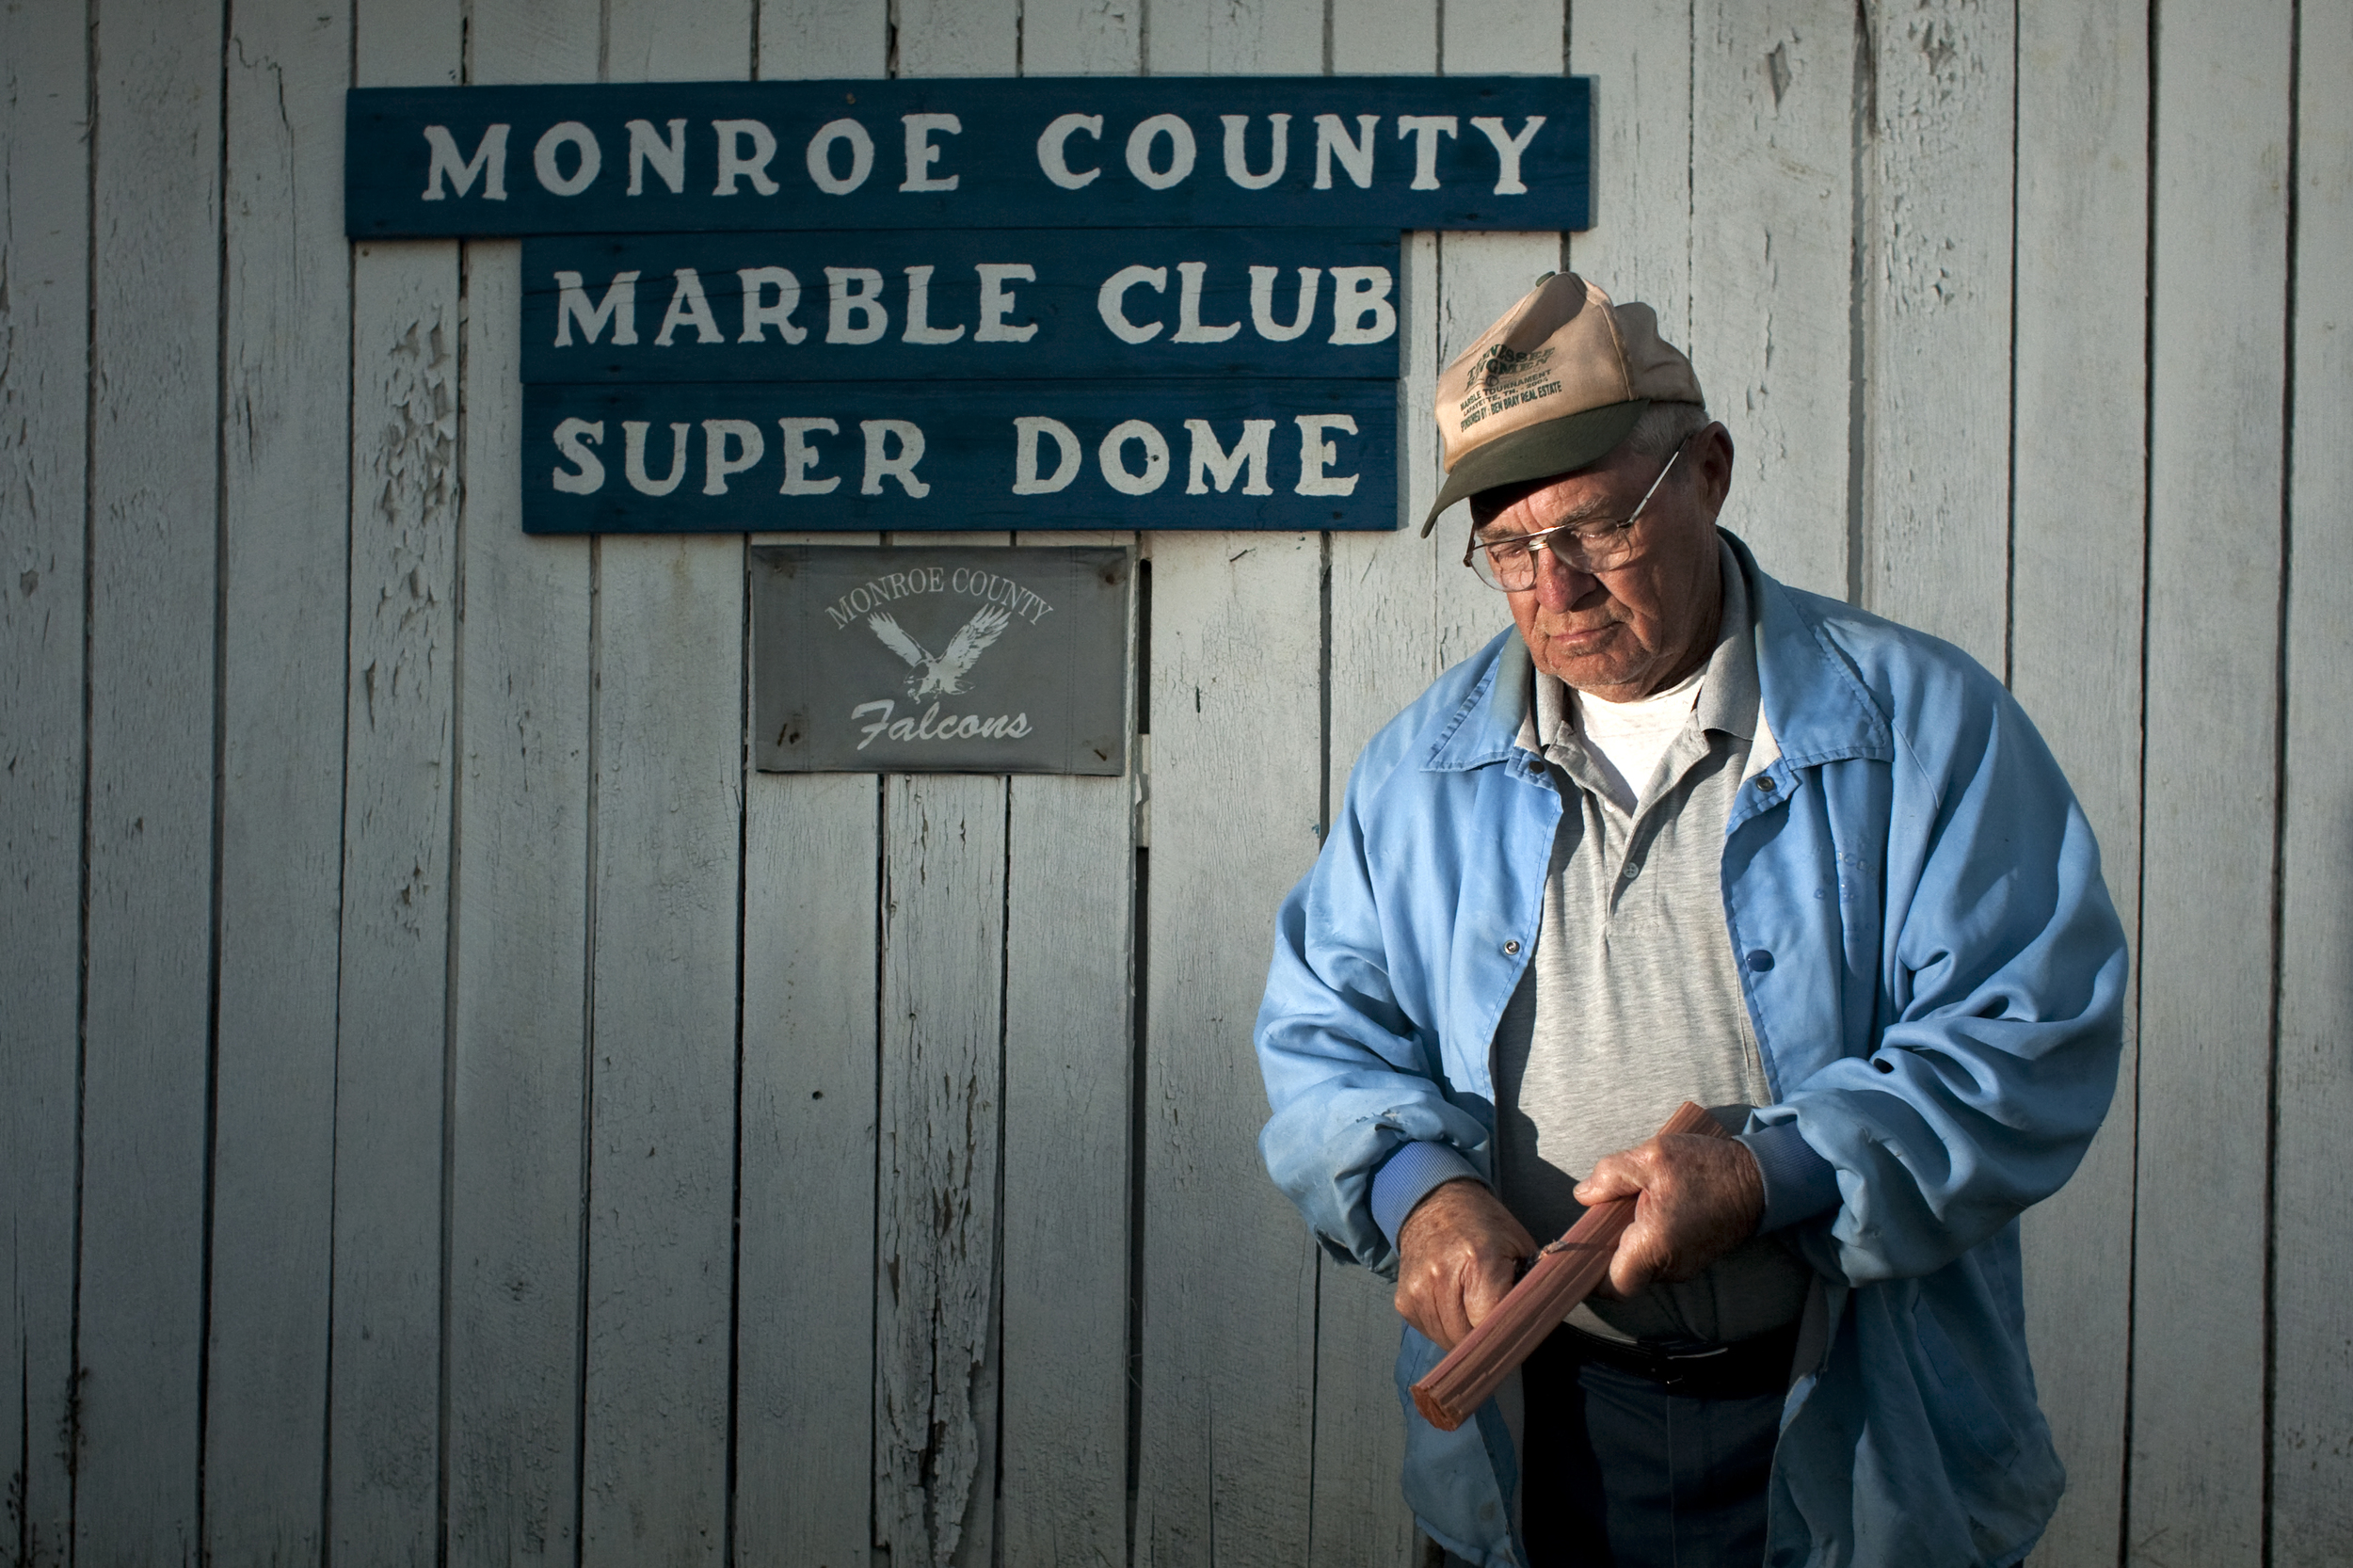 Colonel Bowman was a founding member of the Monroe County Marble Club Super Dome. He is there everyday at 4 pm to open the doors and start the fire on cold days.